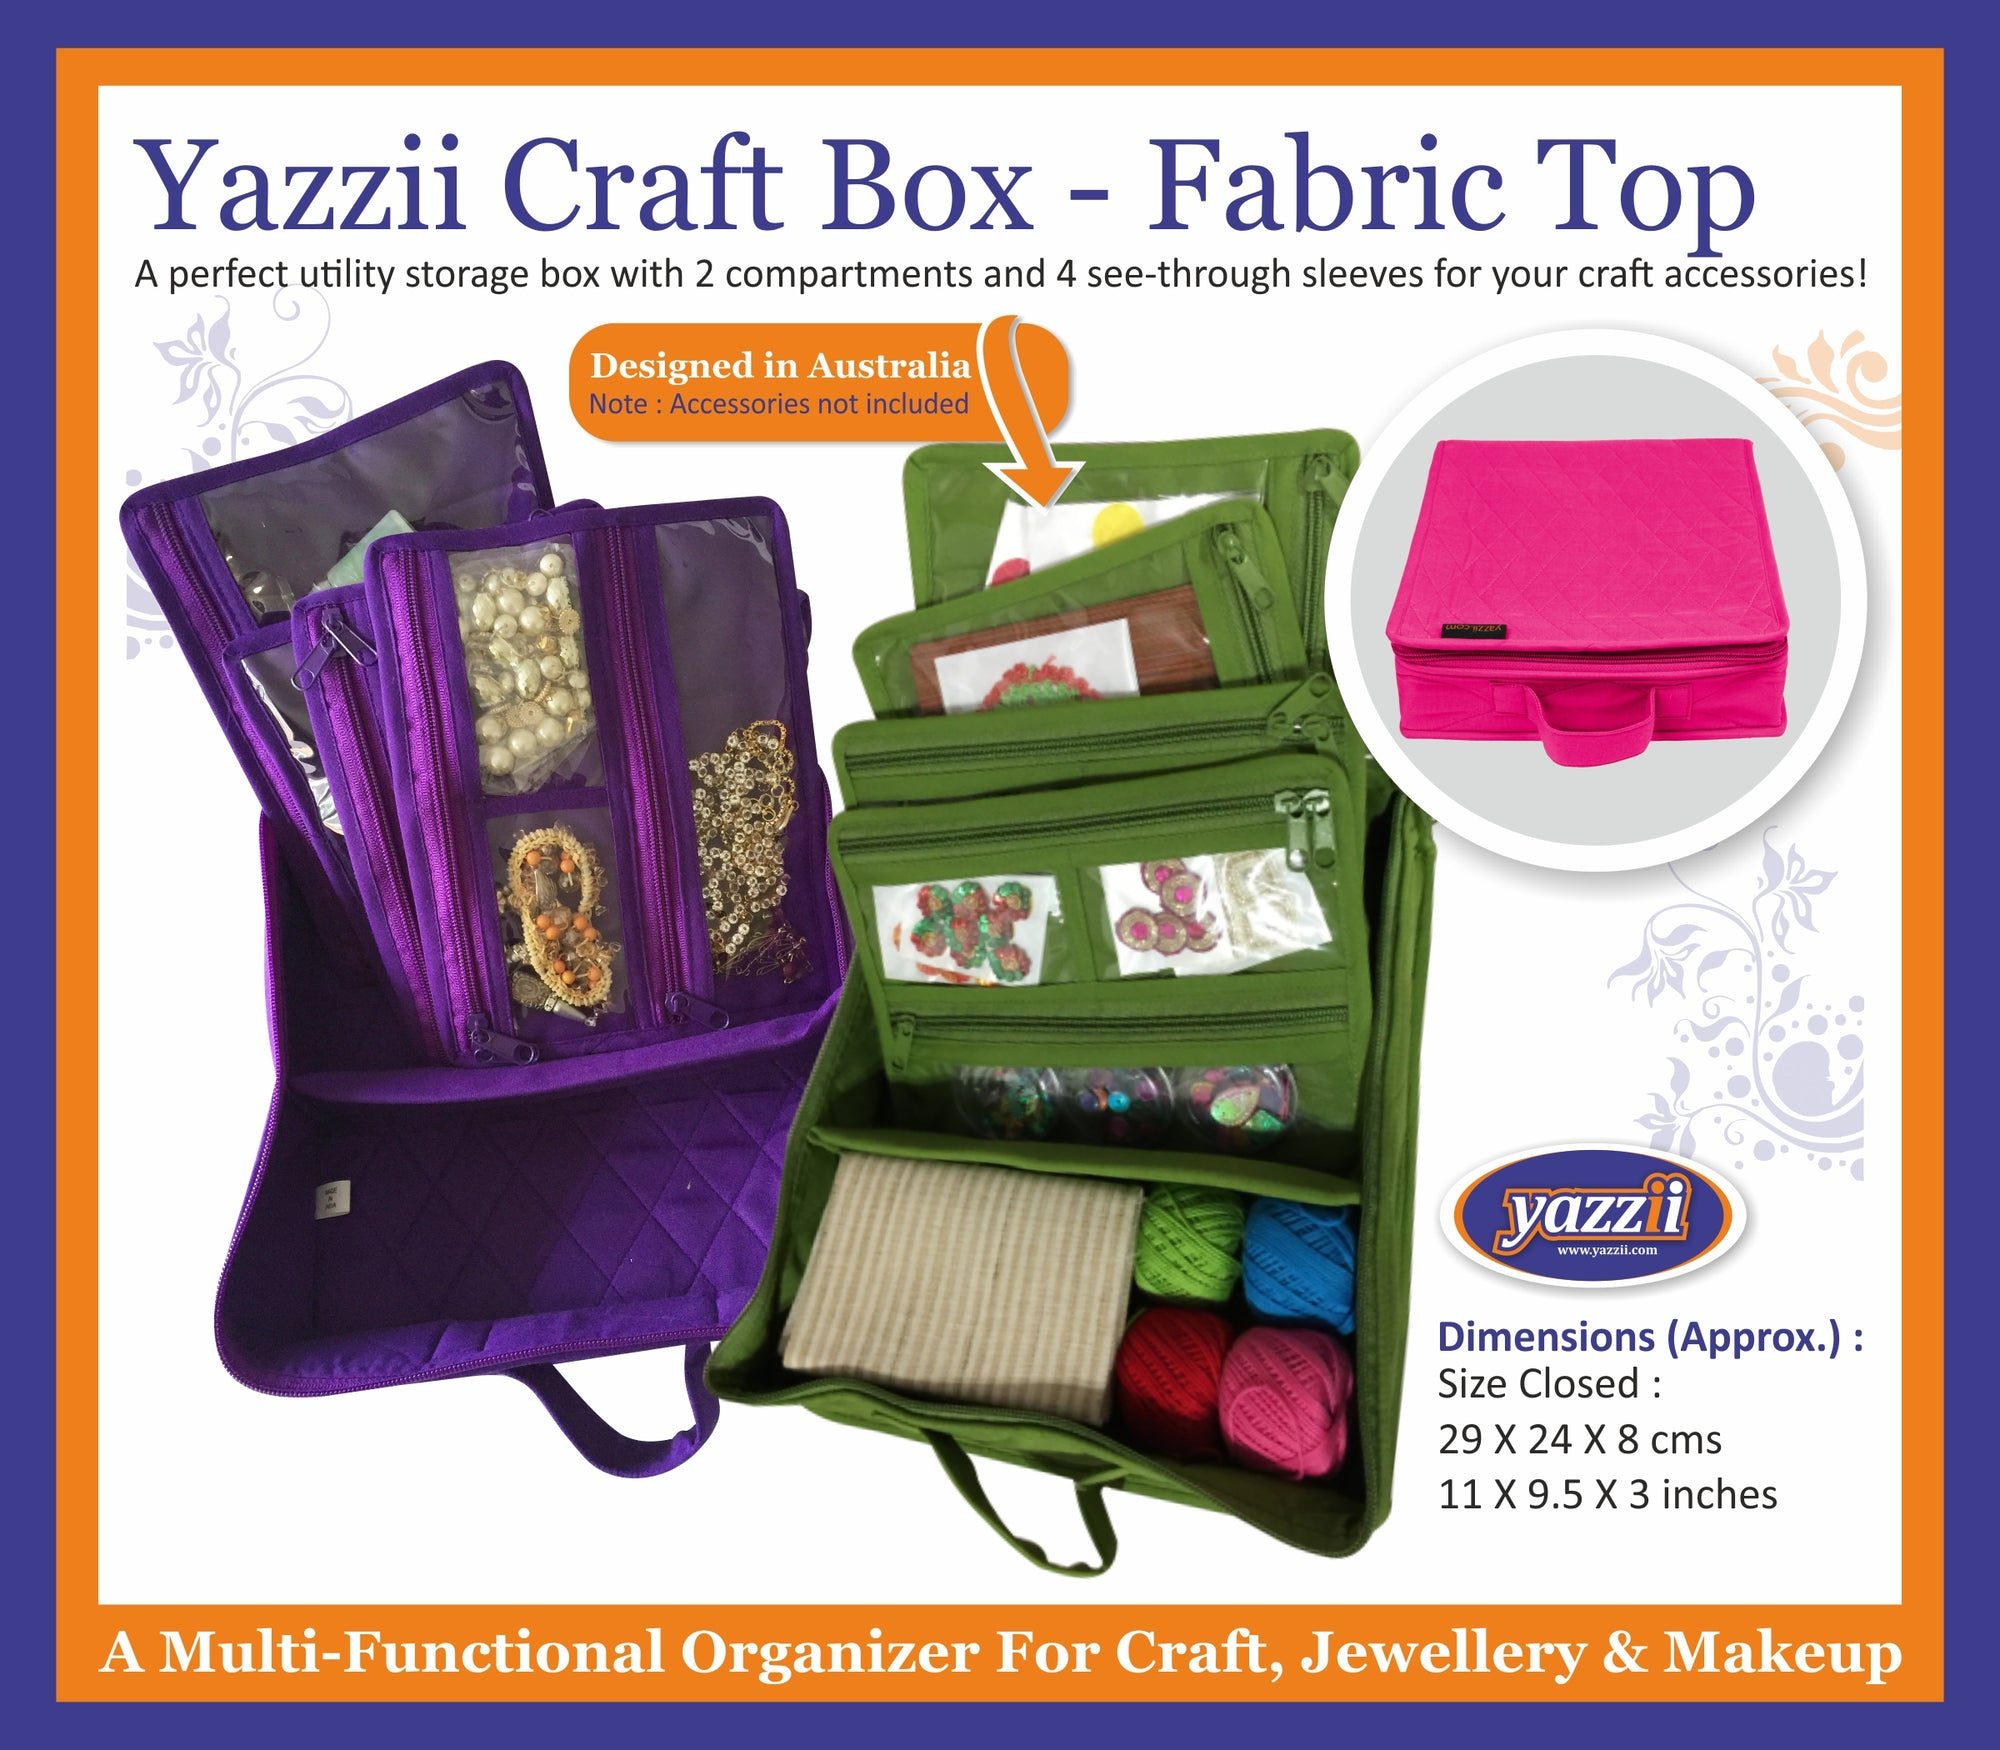 Yazzi Craft Box - Fabric Top